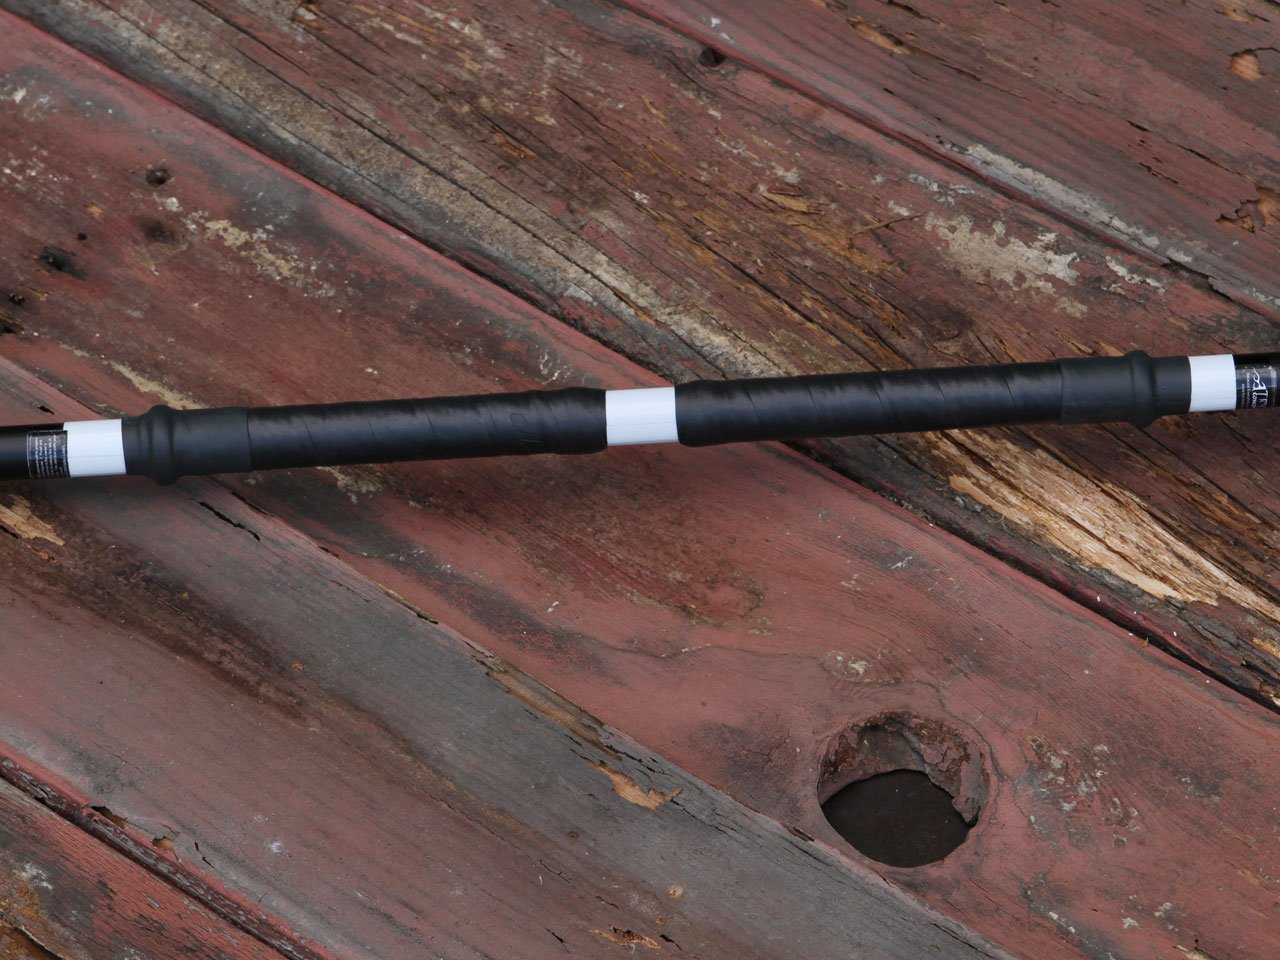 Trick Concepts - Double Fire Staffs, Set of 2, 3ft with Kevlar Wick, Quart Dip Can, Fire Blanket by Trick Concepts (Image #3)